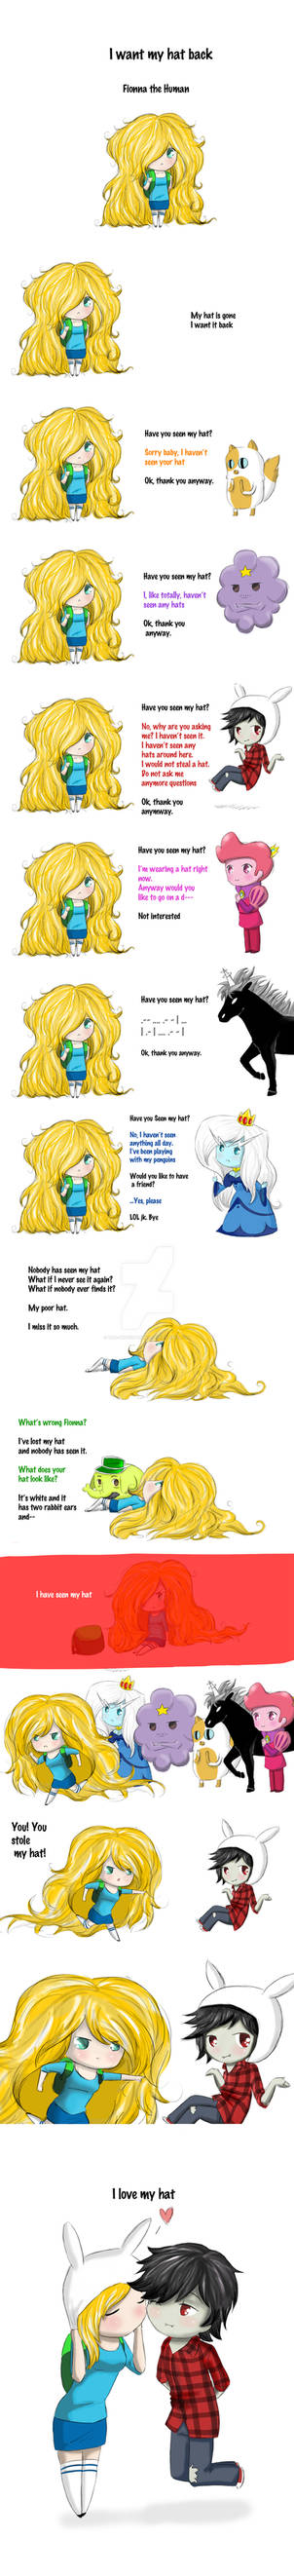 I Want My Hat Back: Fionna the Human